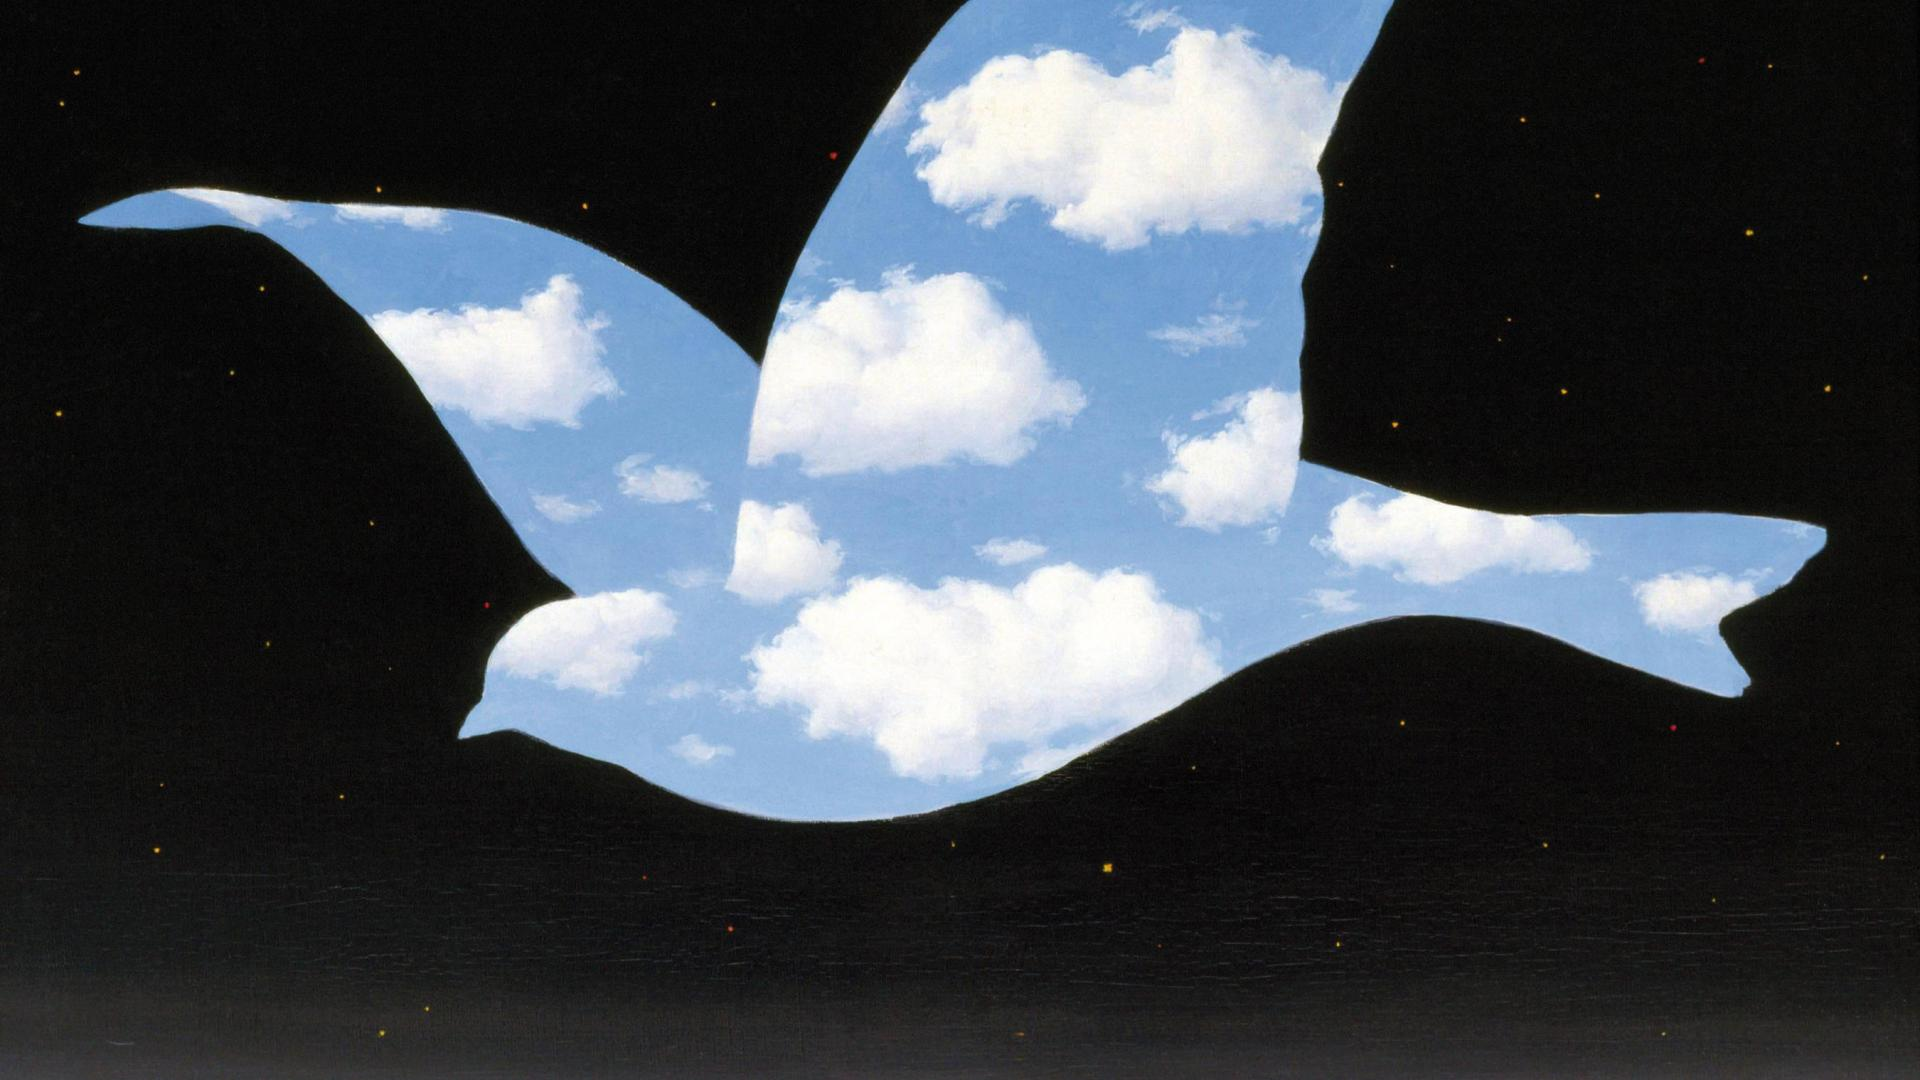 RENE MAGRITTE THE KISS WALLPAPER   76809   HD Wallpapers 1920x1080